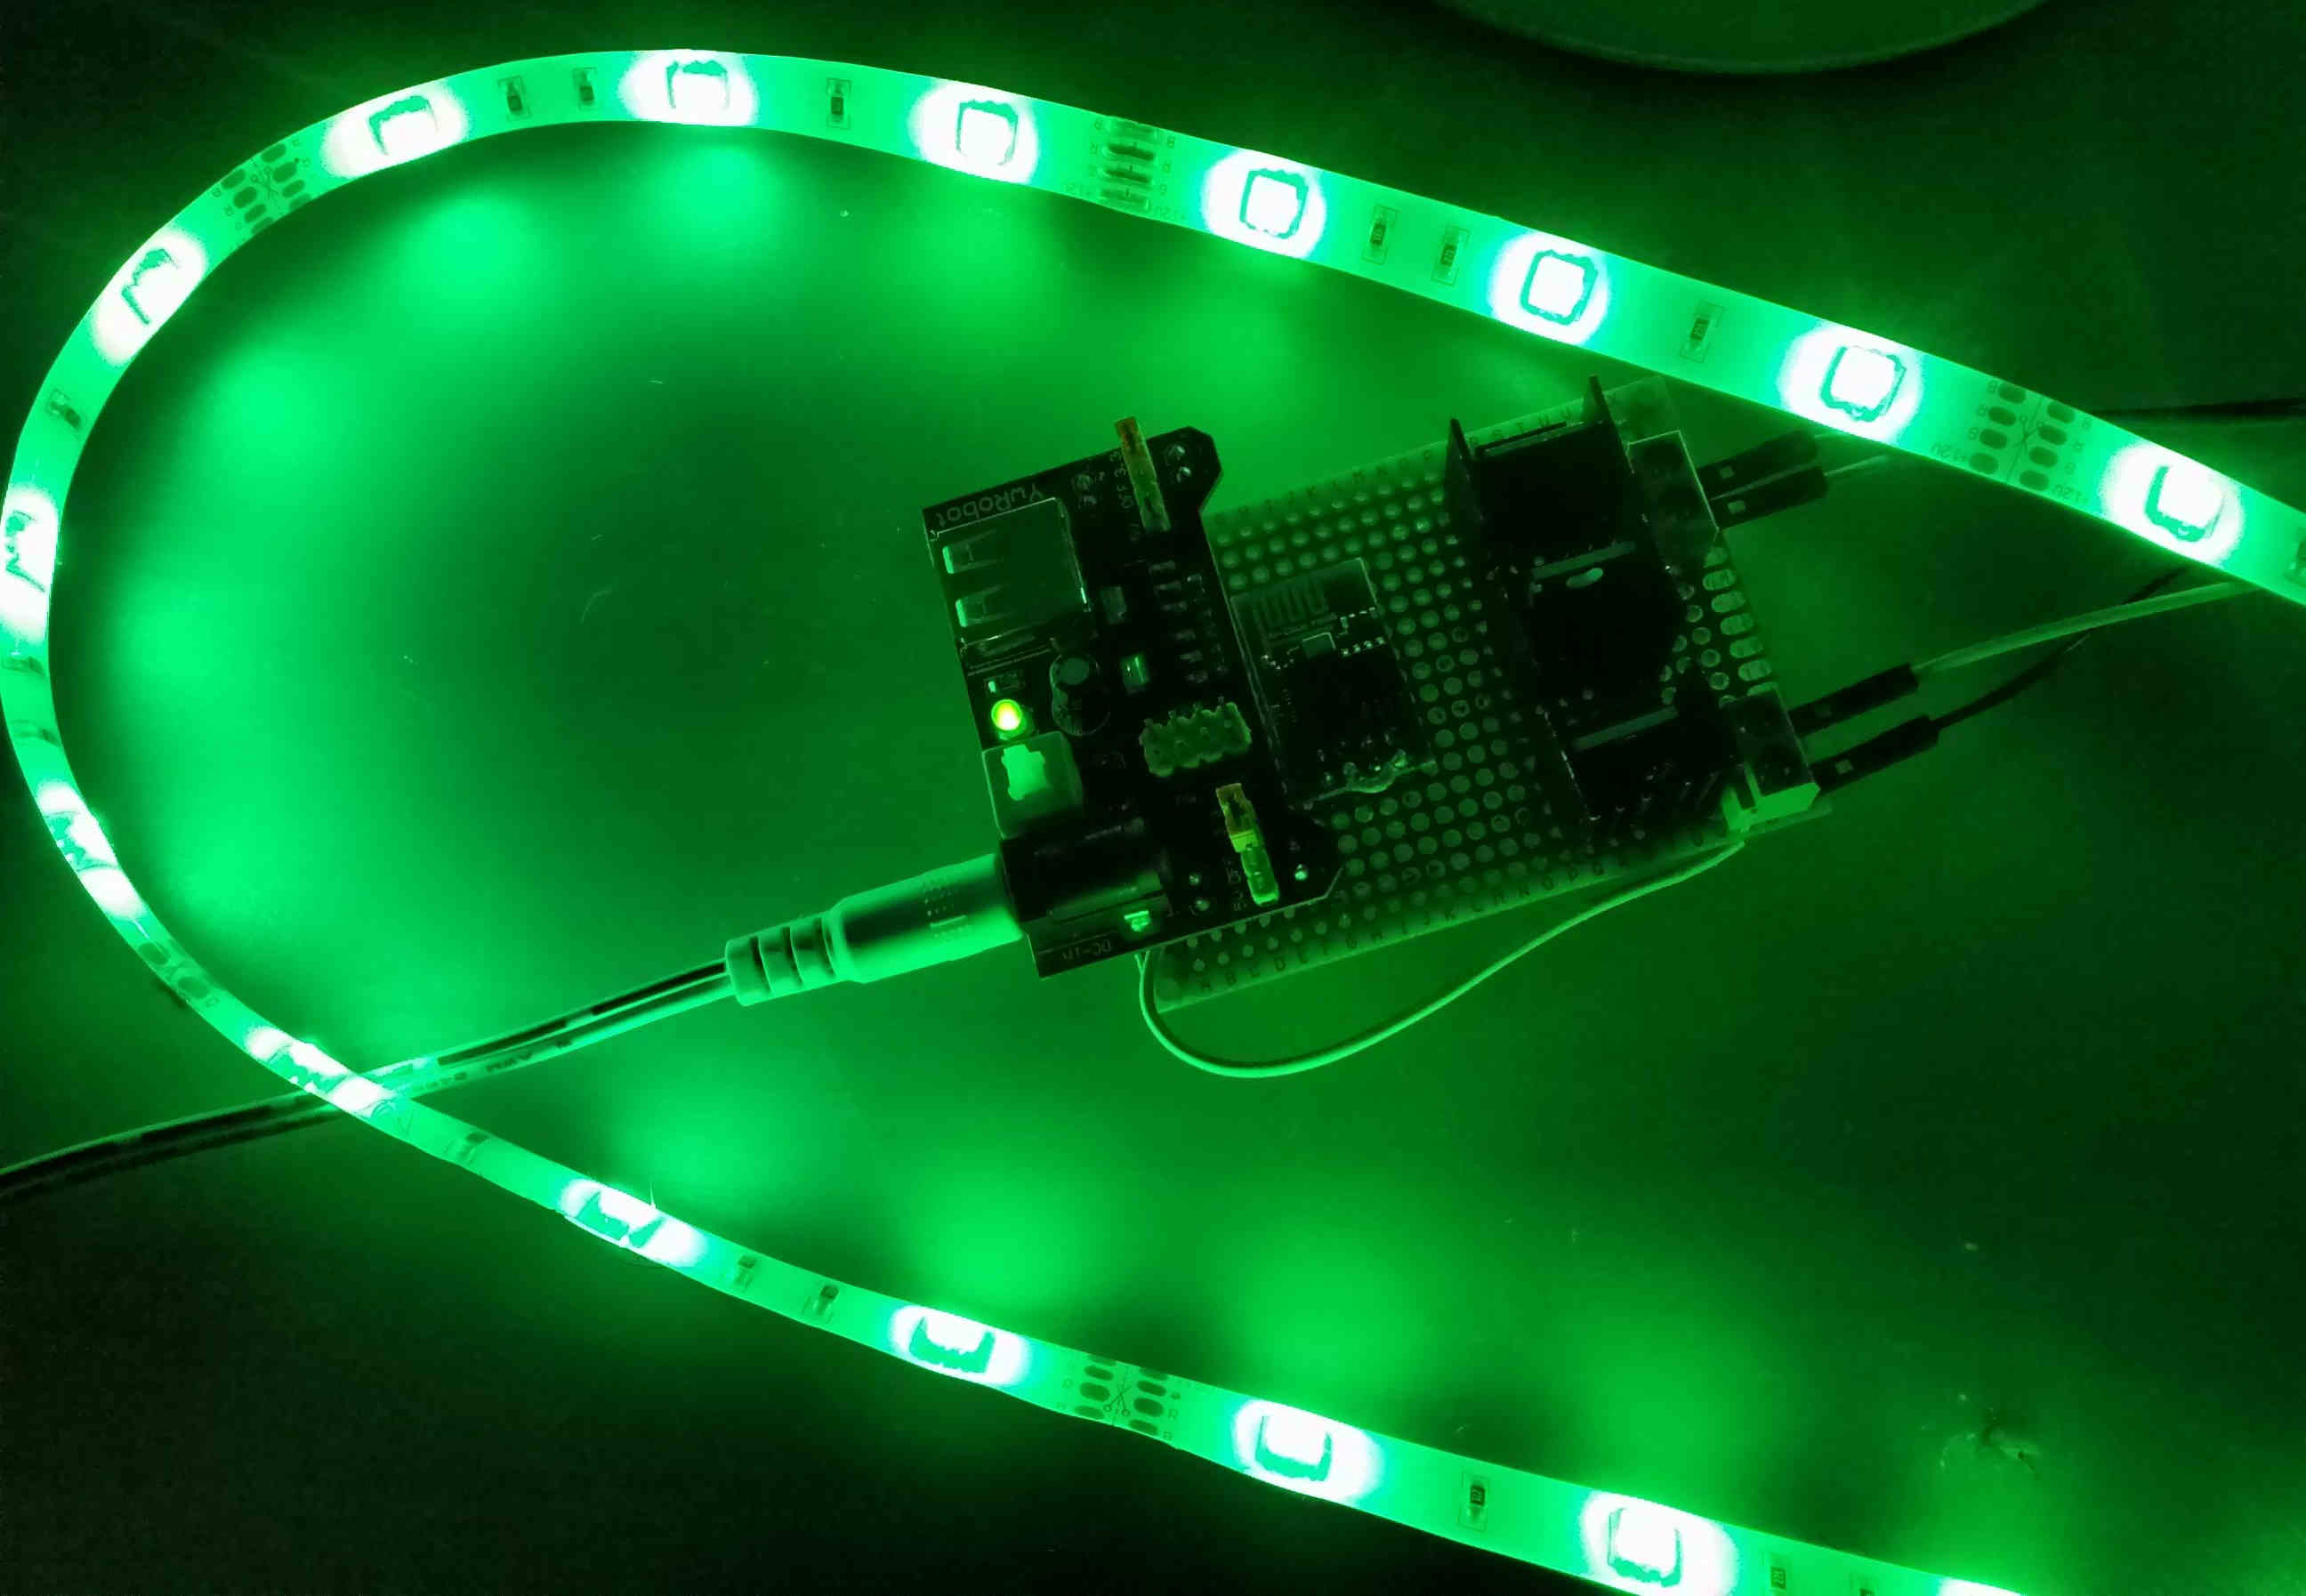 Glowing led strip around controller